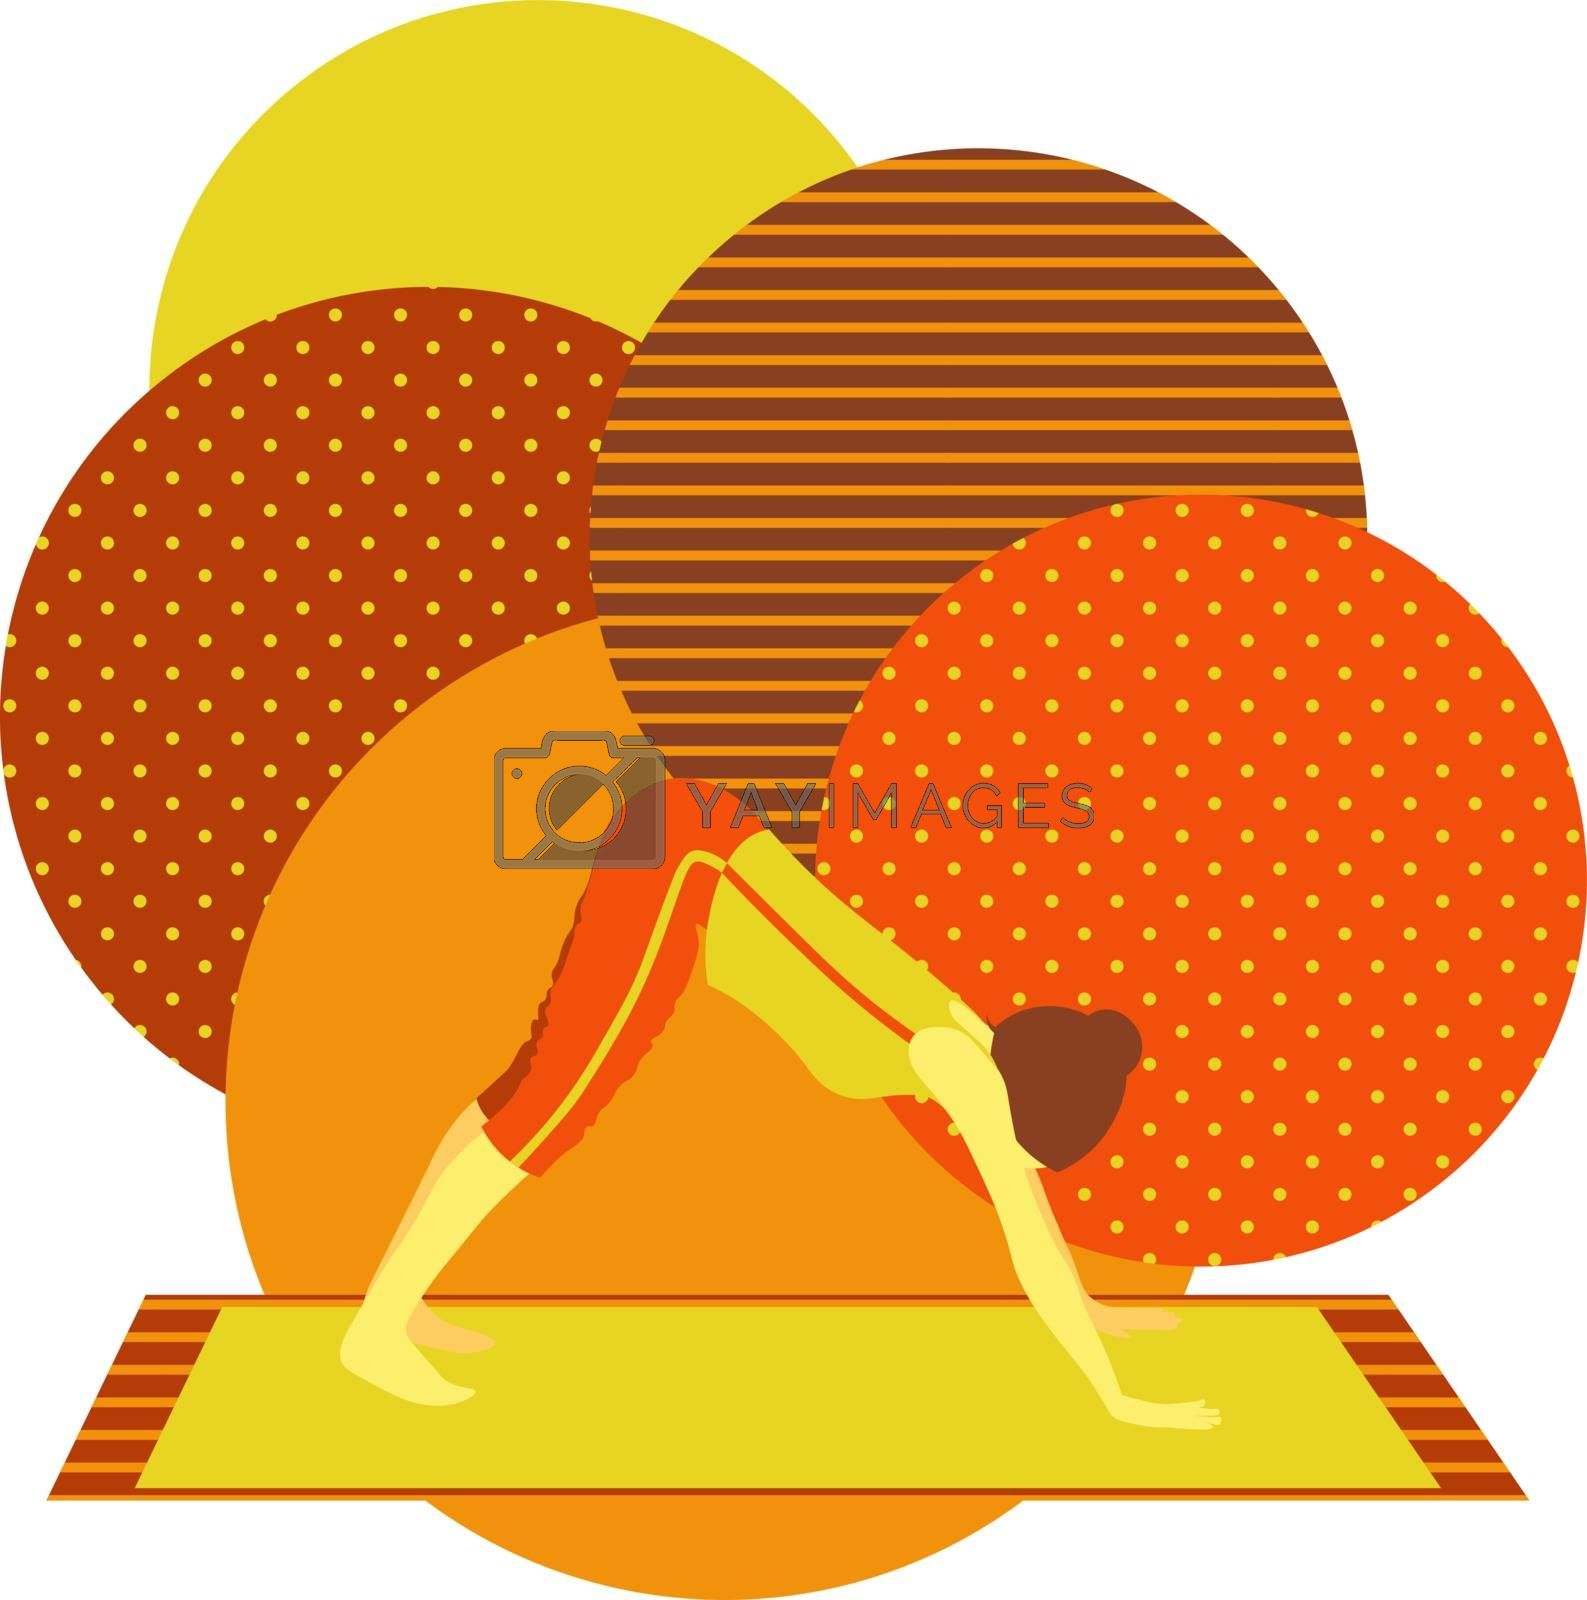 colorful illustration with cute faceless gril doing downward facing dog asana on orange background